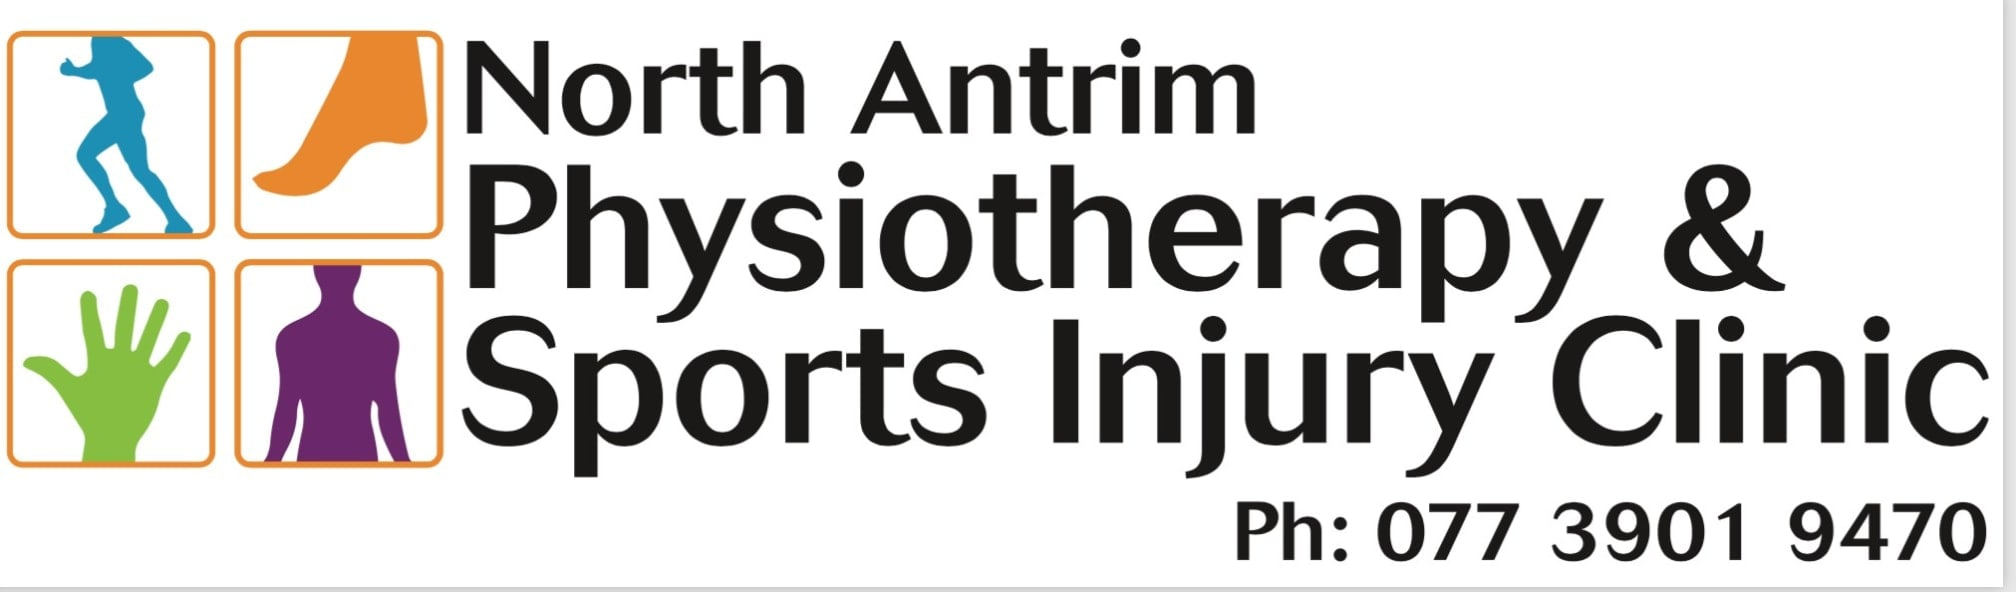 North Antrim Physiotherapy & Sports Injury Clinic | 91 Lislaban Rd, Ballymena BT44 9HZ | +44 7739 019470